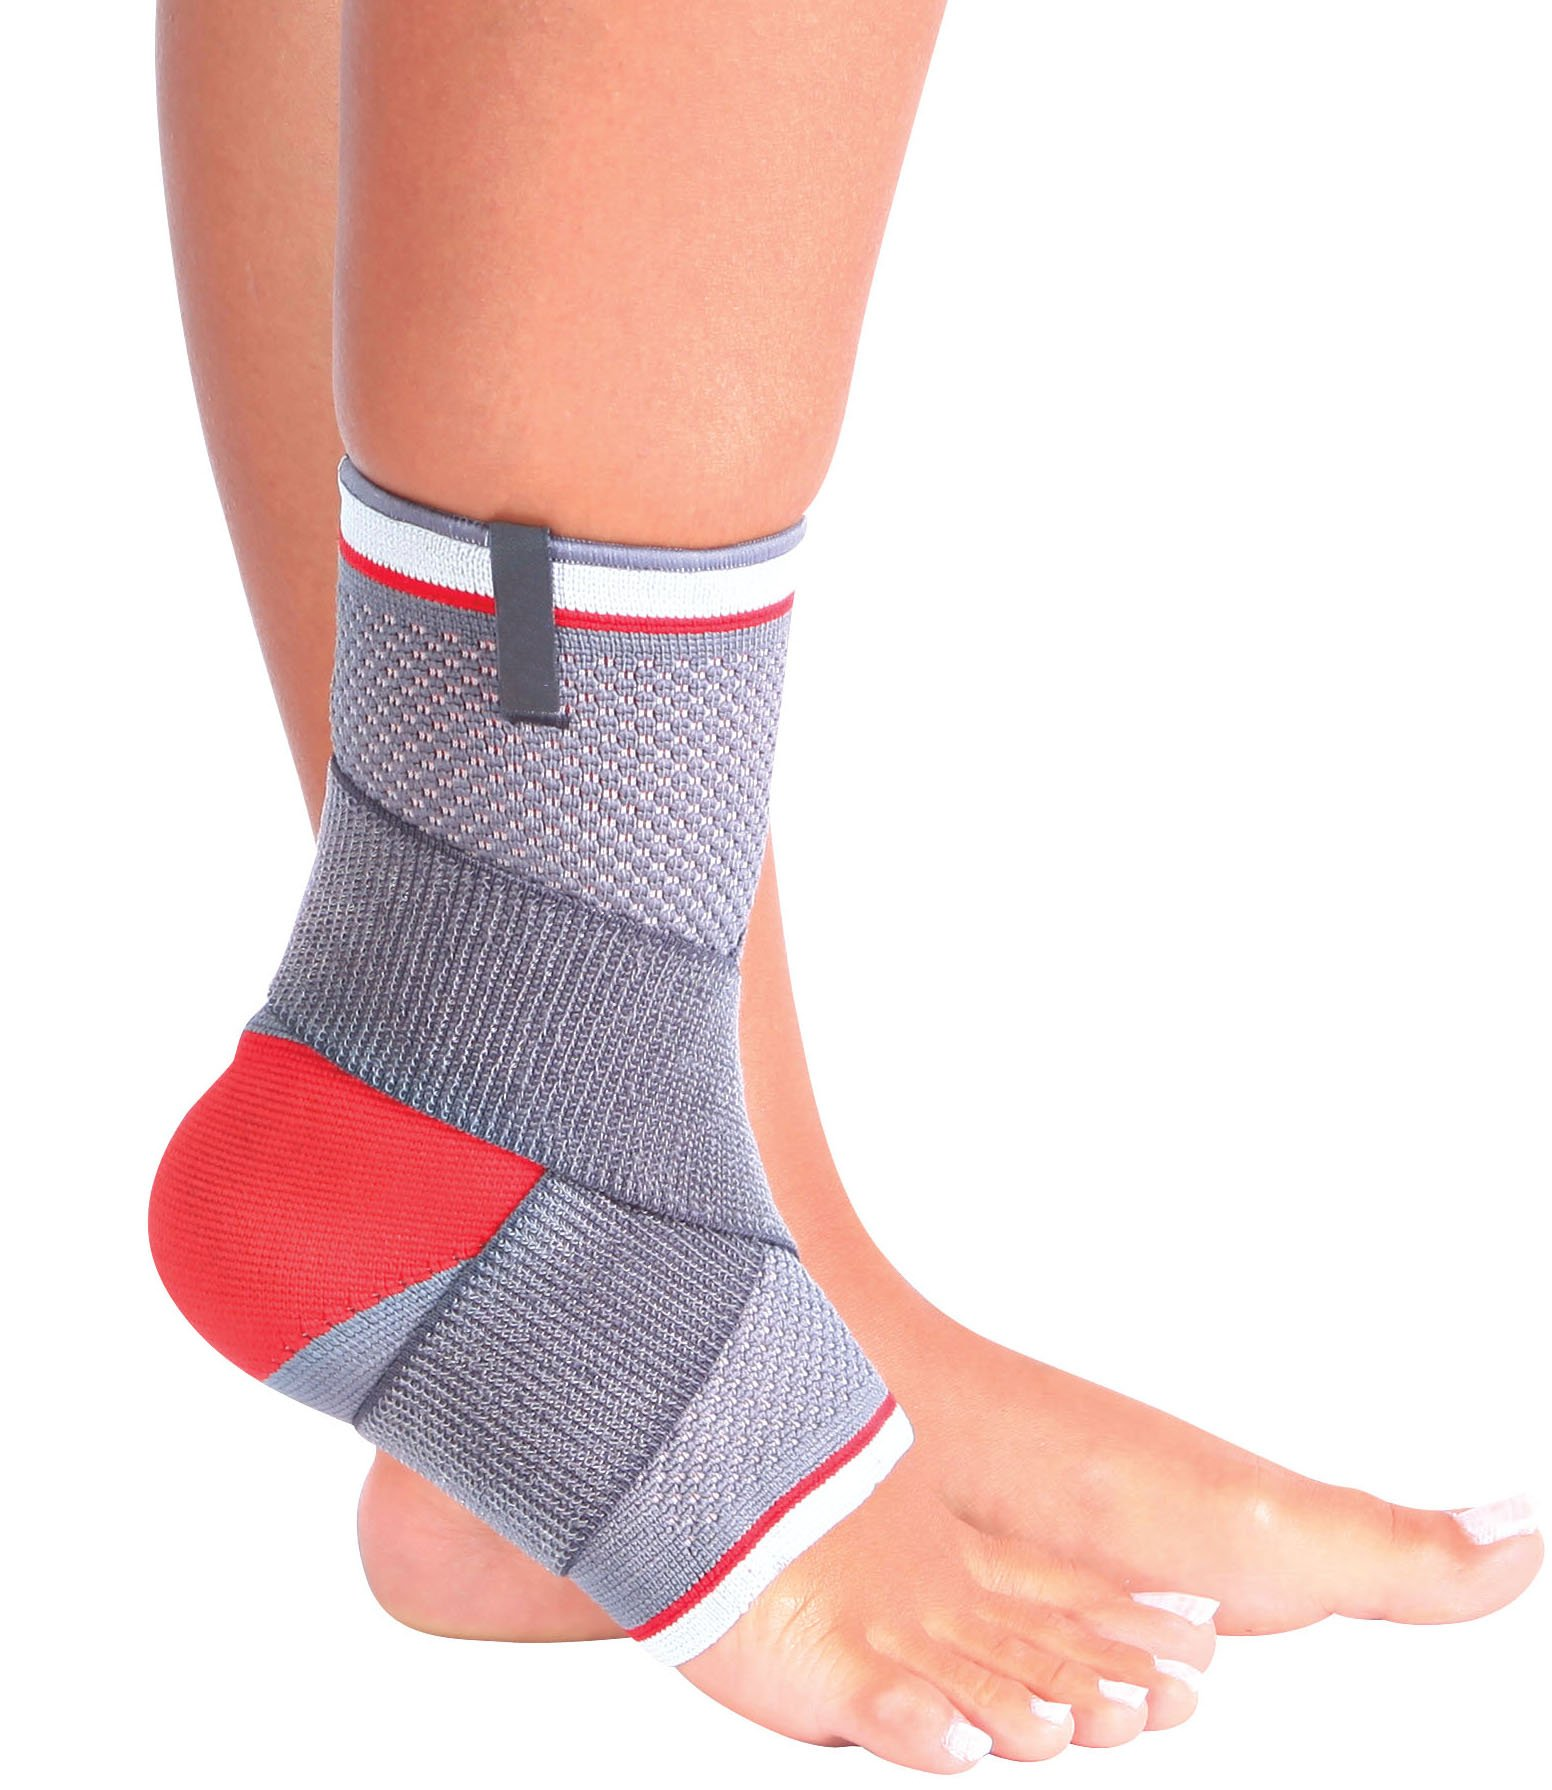 ORTONYX Ankle Support Brace Compression Sleeve - M Gray/Red